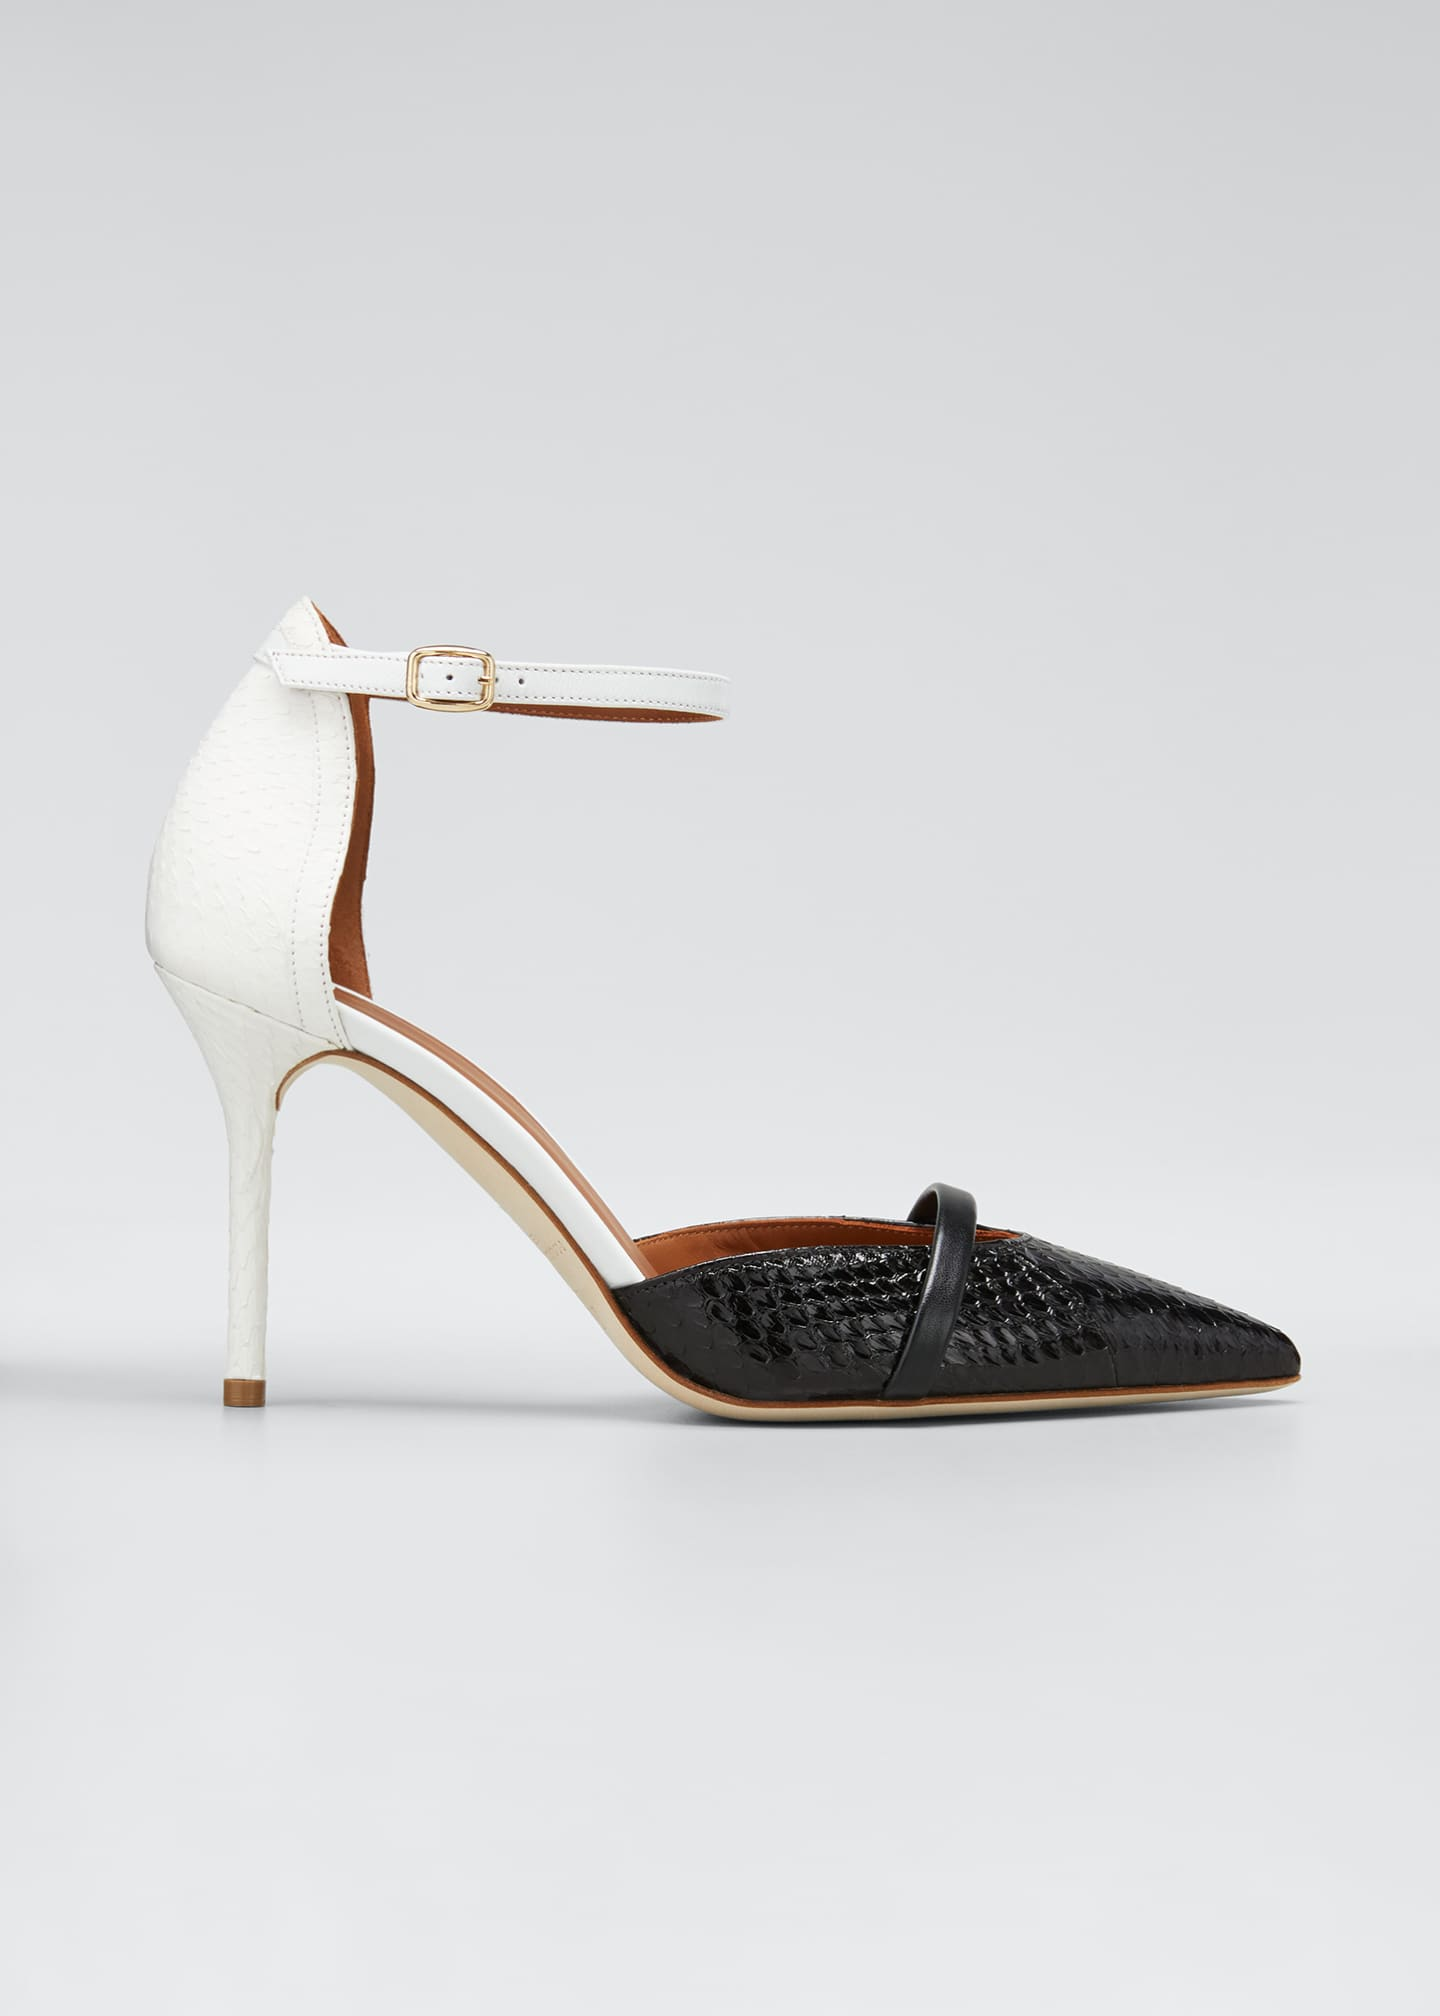 Malone Souliers Booboo 85mm Two-Tone Snake Pumps